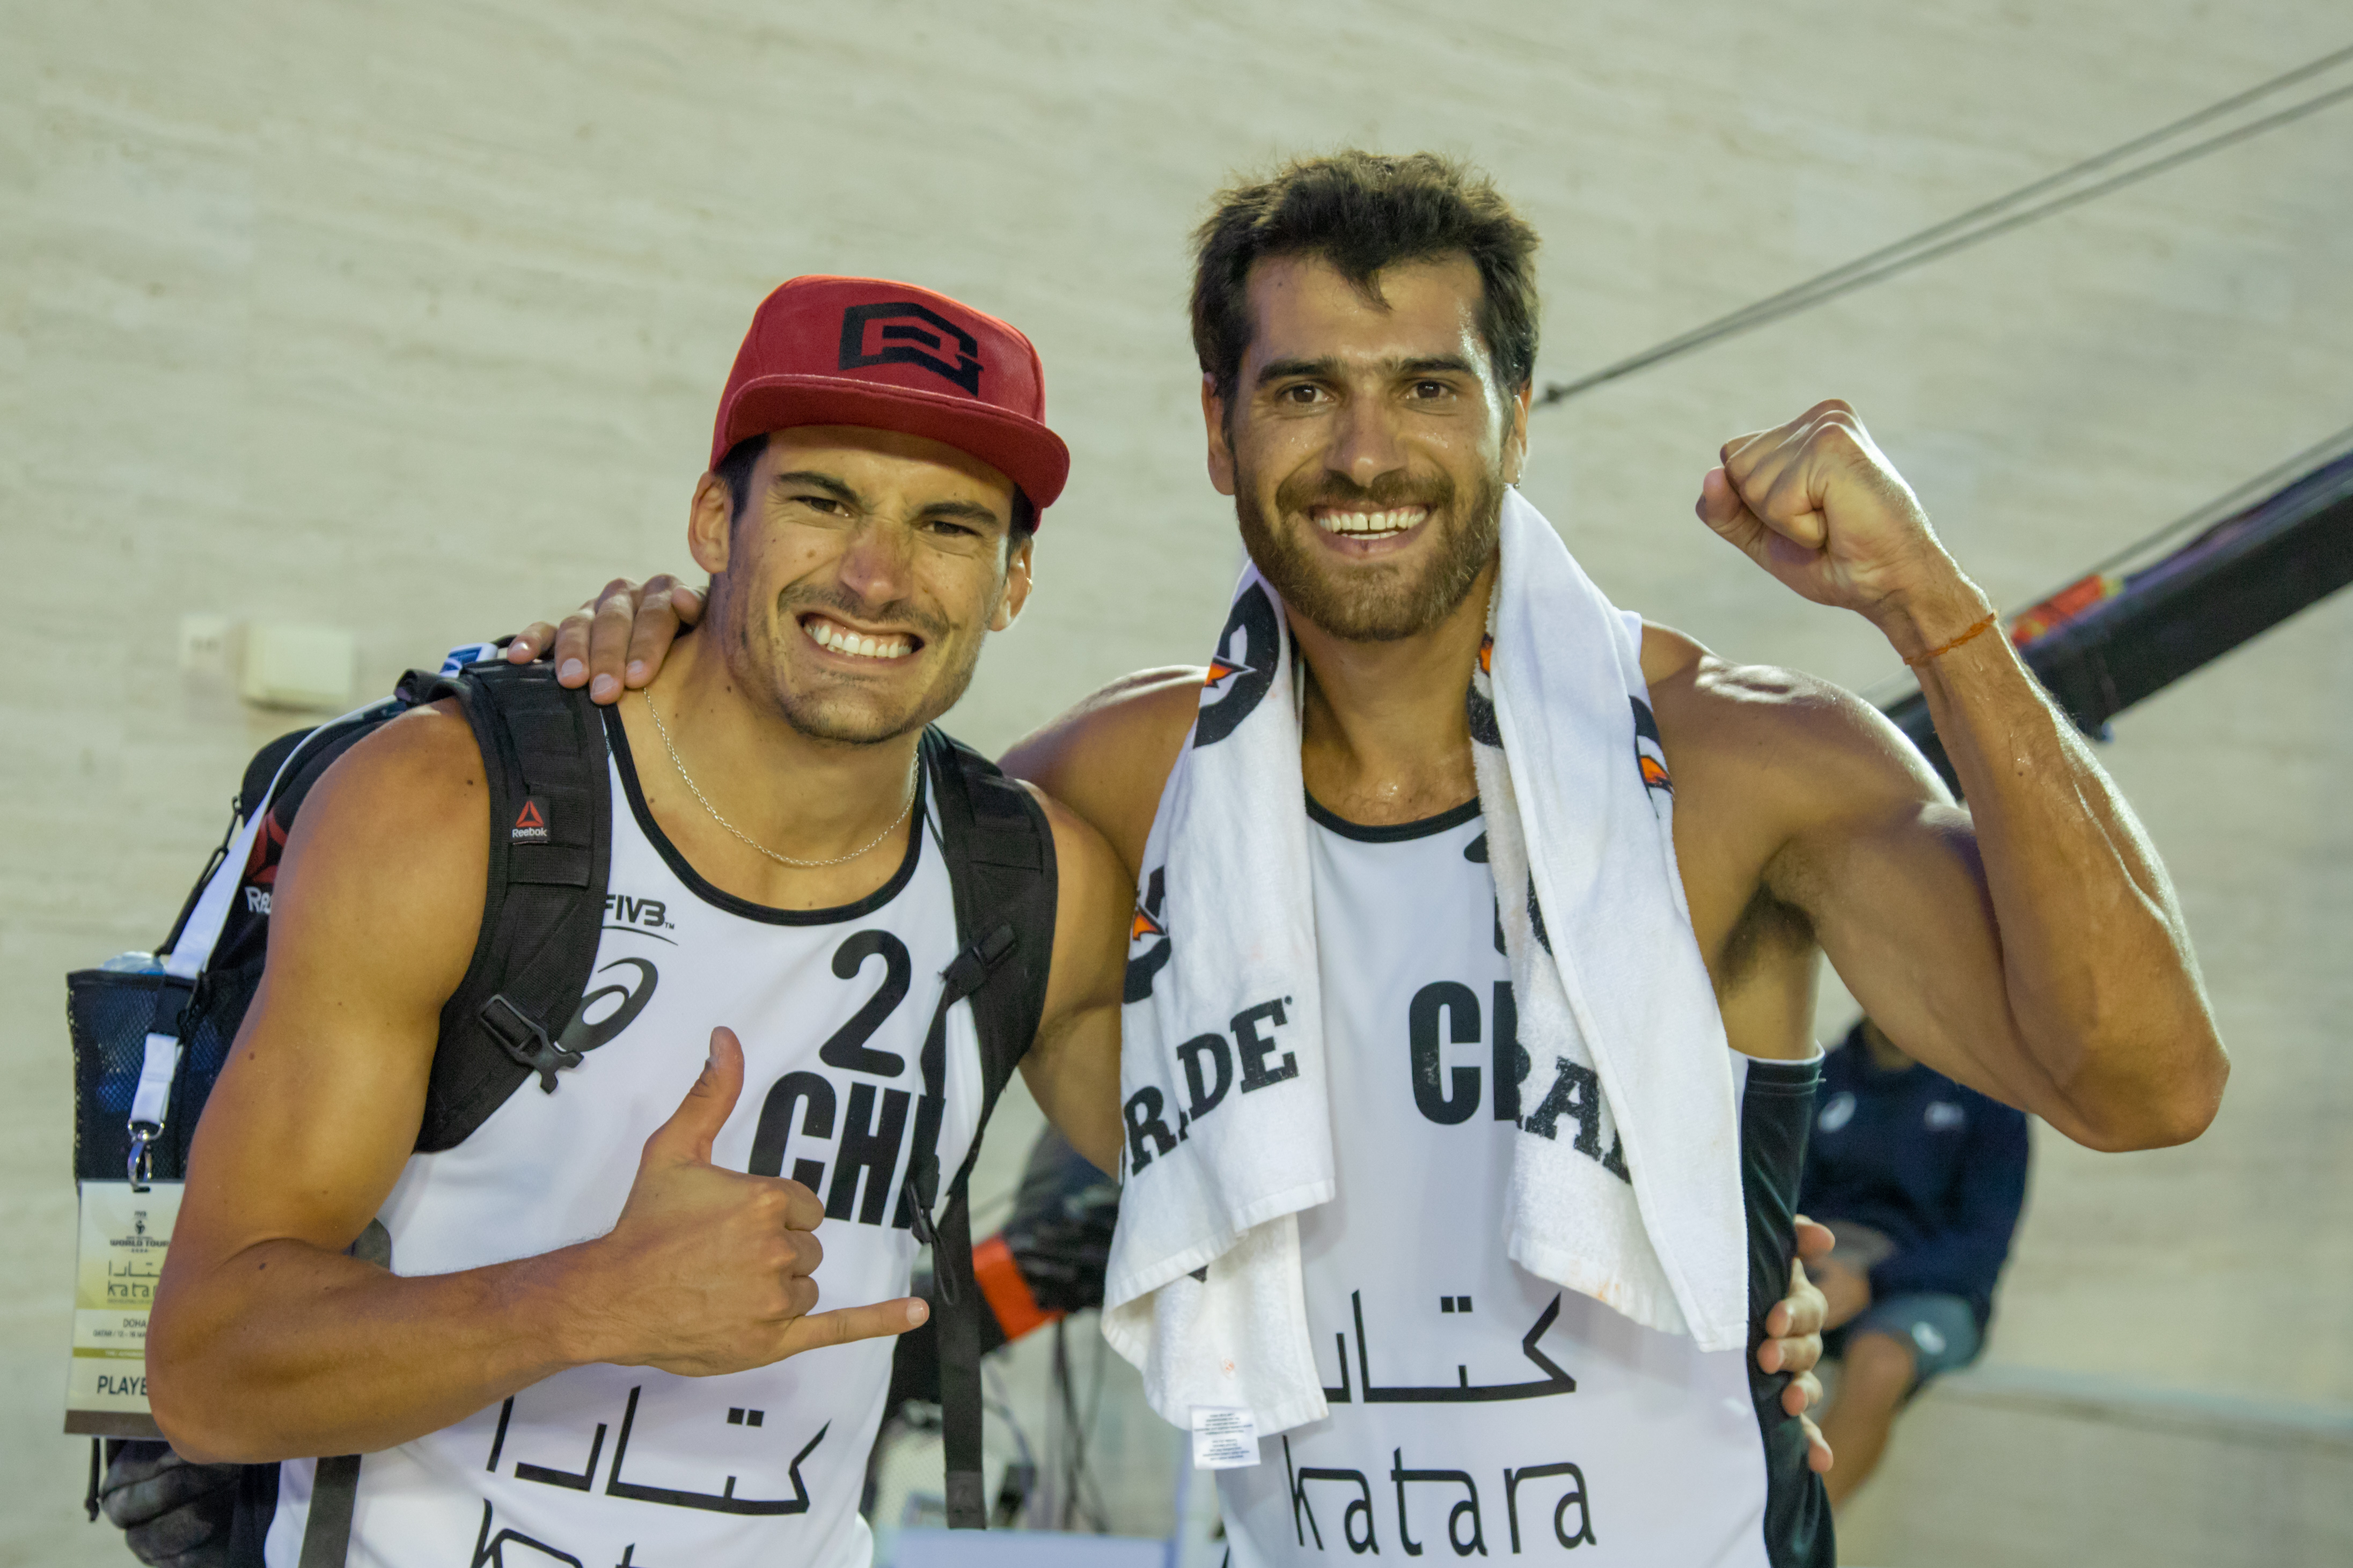 Retirement definitely on hold as Dalhausser and Lucena reach Doha 4-Star final - Doha